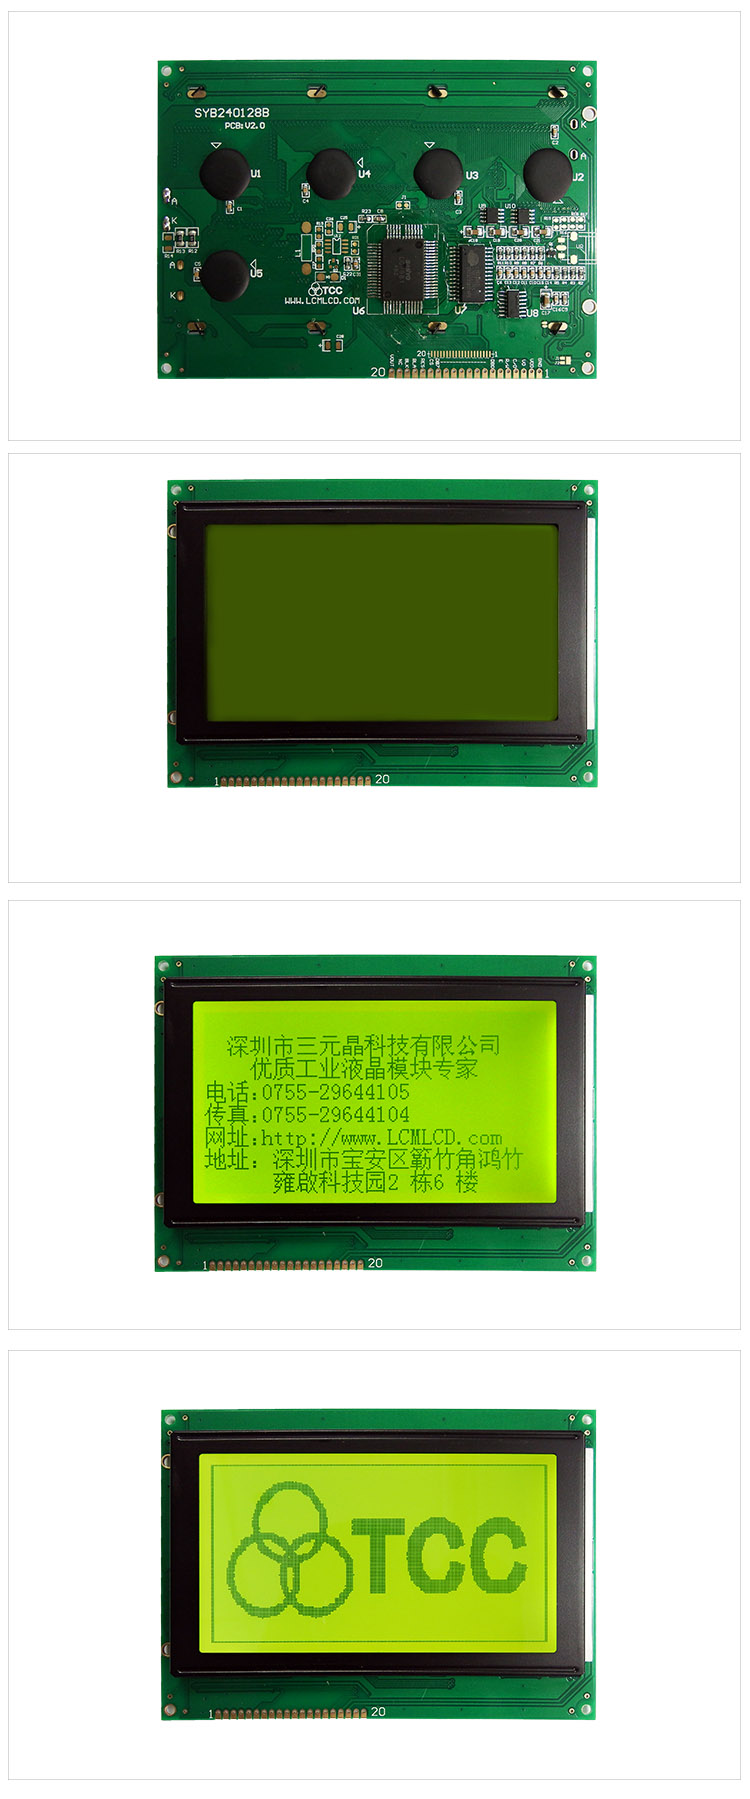 TCC LCD 240128 graphic display screen module 20-pin LC7981 controller stn 240x128 lcd with LED backlight